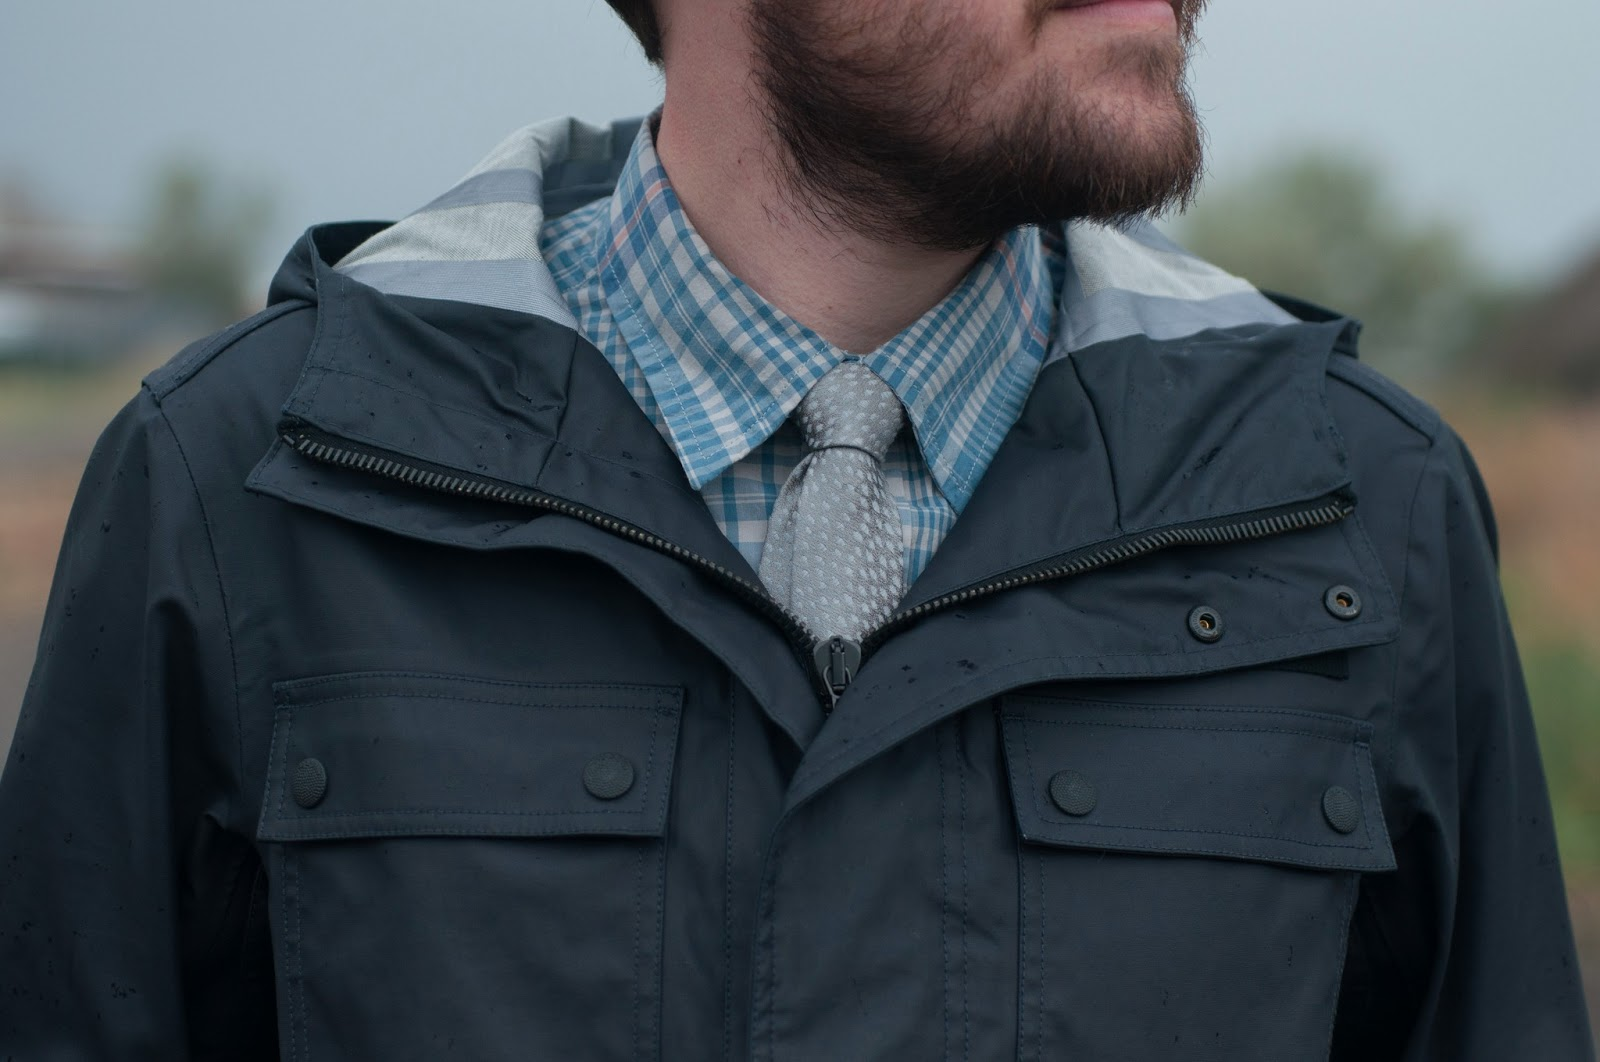 style blog, fashion blog, style blogger, fashion blogger, rag and bone, rag and bone lowman jacket, mens style, mens fashion, mens fashion bloggger, jcrew, jcrew plaid slim fit button up shirt, jcrew, jcrew slim fit, burberry, burberry mens tie, burberry tie, burberry grey tie, all saints, all saints cigarette jeans, all saints sodium cigarette jeans, all saints sodium cigarette jeans sky blue, vans, vans authentic sneaker, vans shoes, train tracks, rainy day,